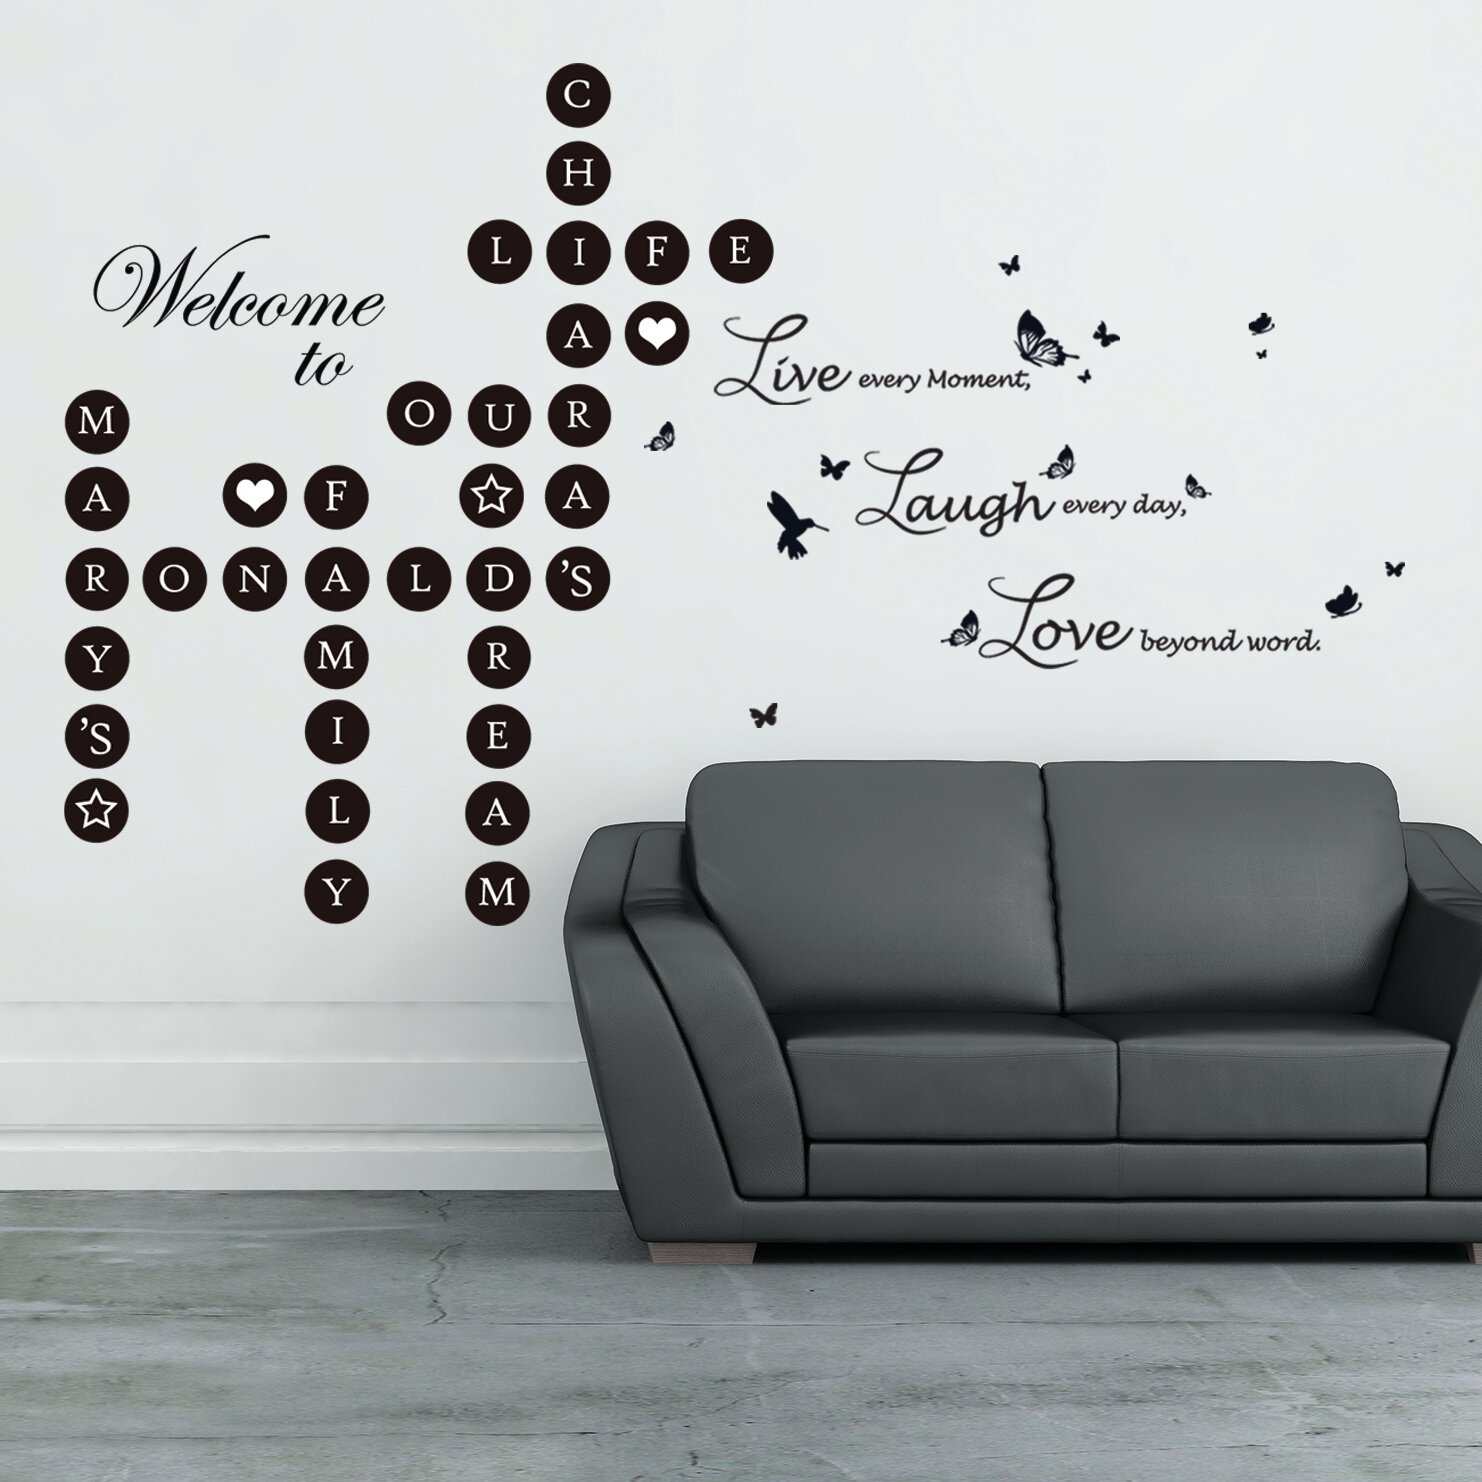 Walplus Word Puzzles And Live Laugh Love Wall Decal Wayfair